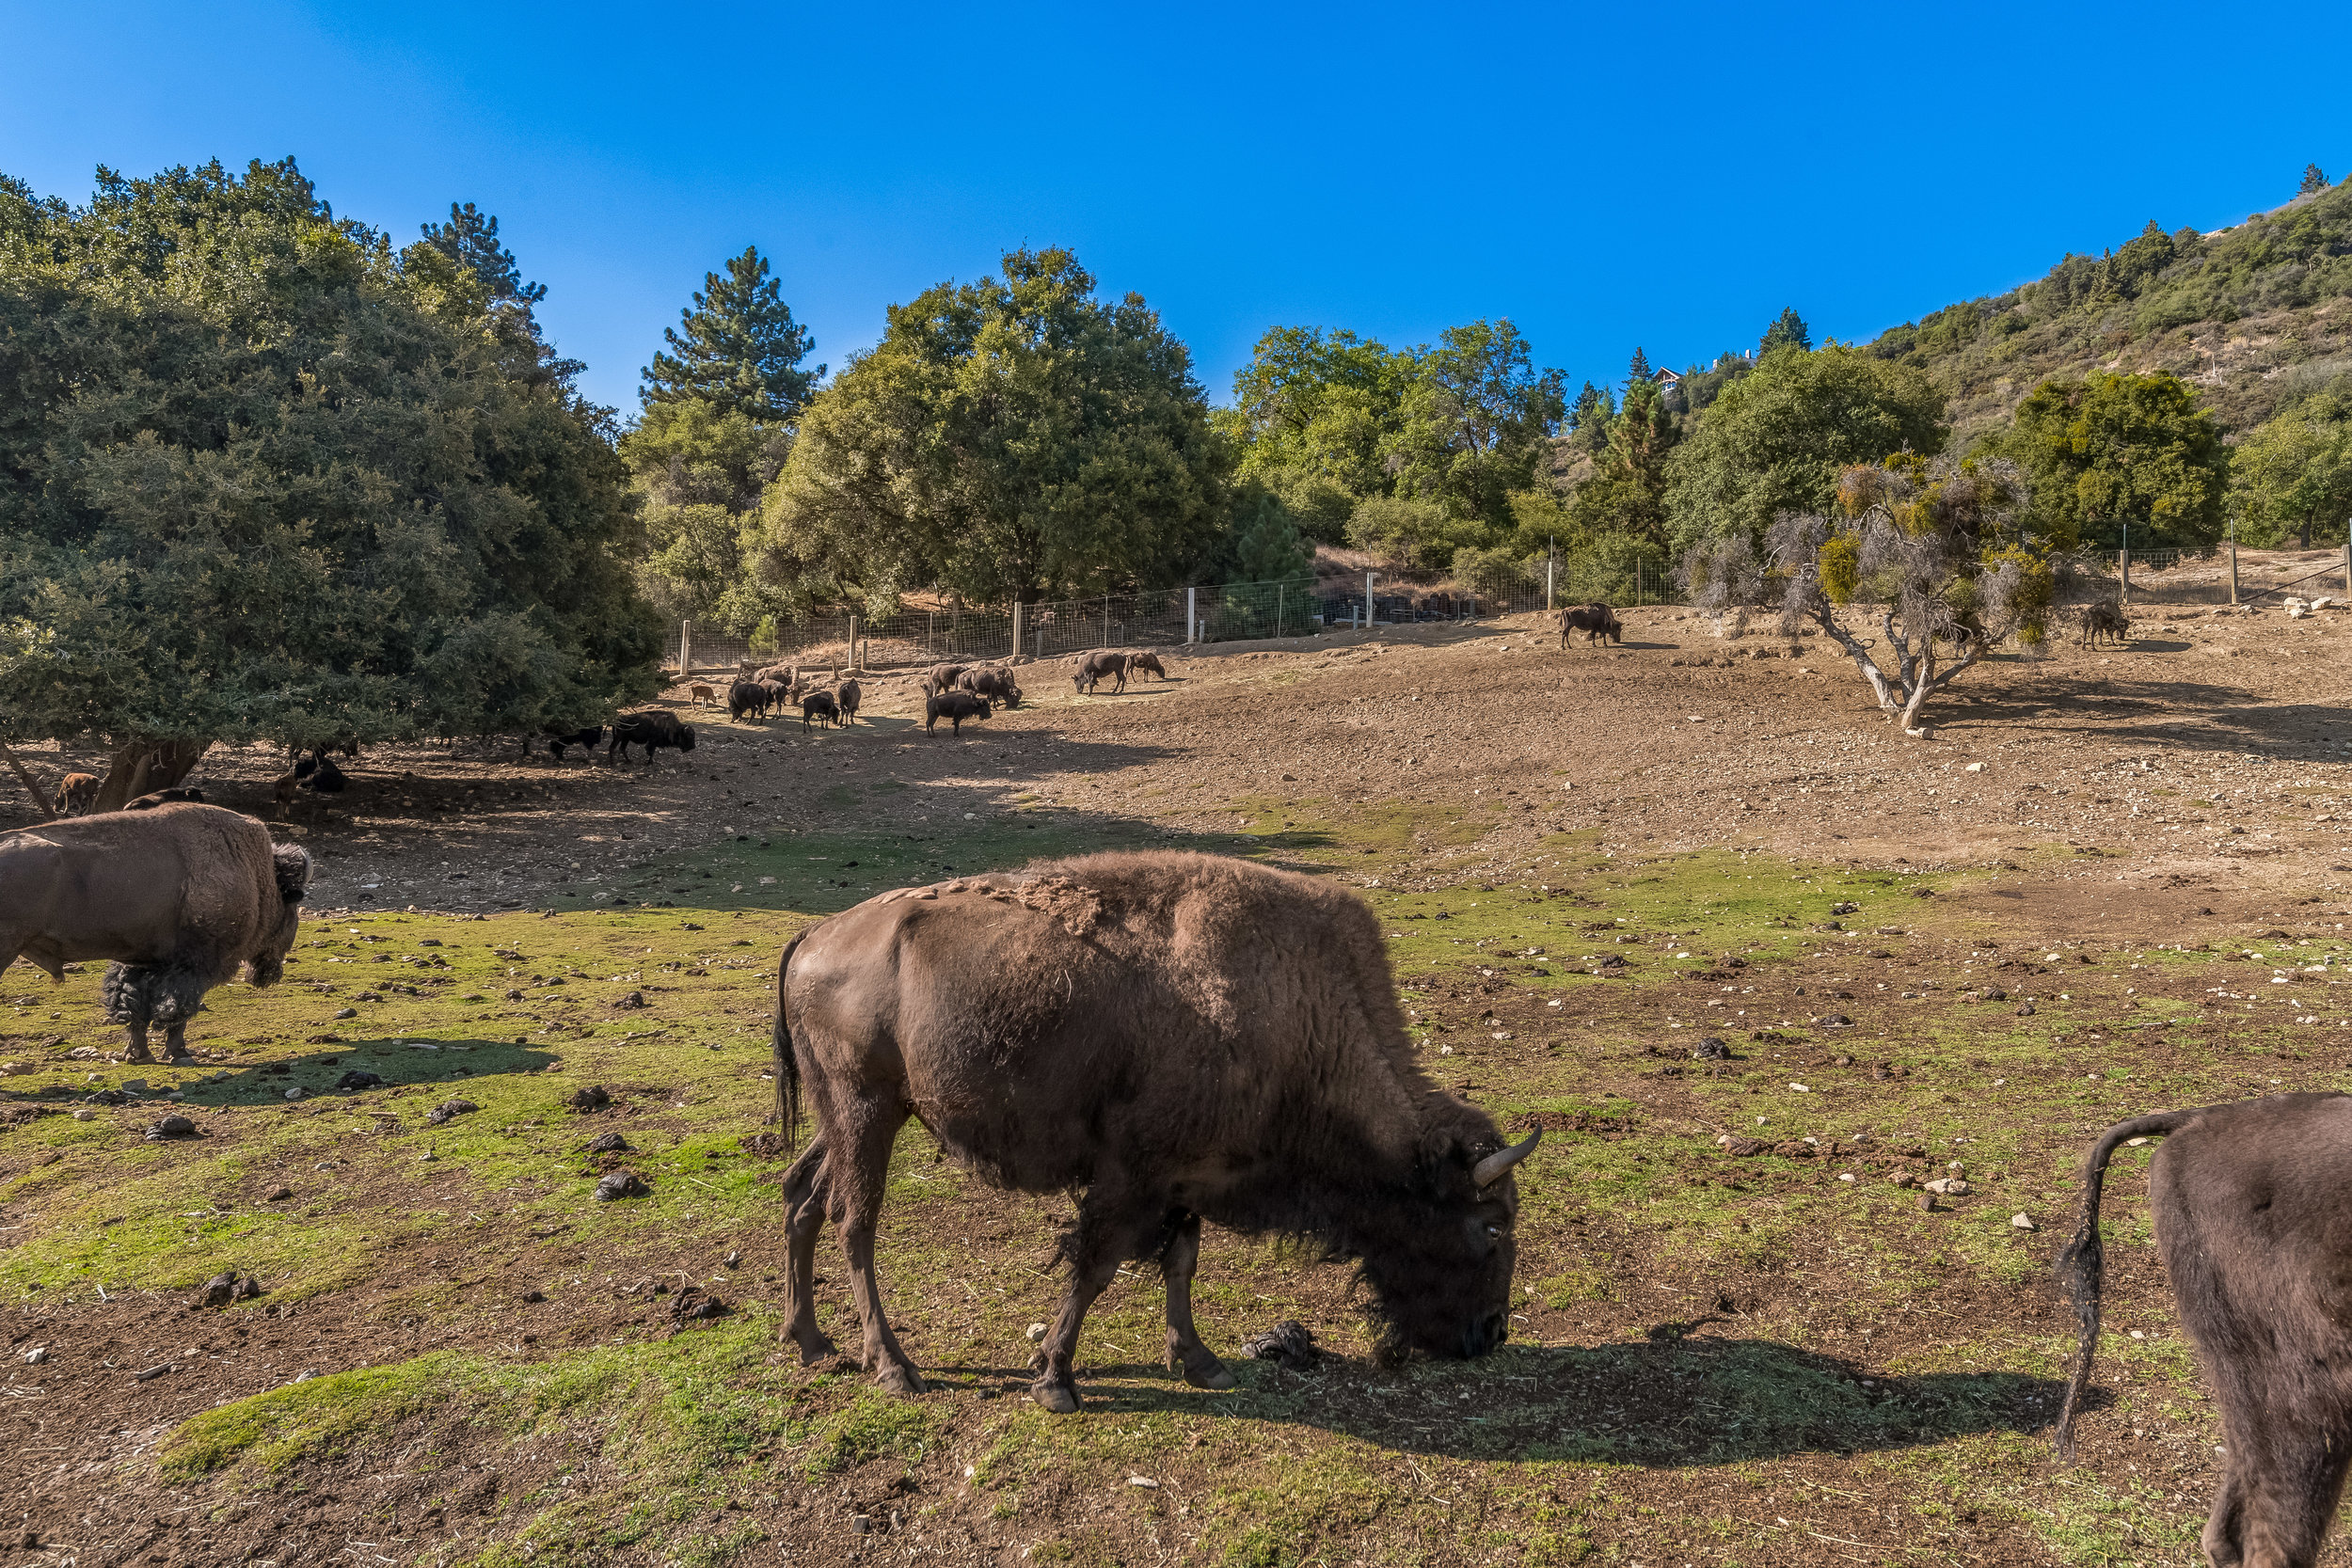 The Buffalo Ranch/ - The fully-operating Buffalo Ranch comes with 45 buffalo, which are both grass- and apple-fed and sustainably served at the Oak Glen Steakhouse and Saloon.